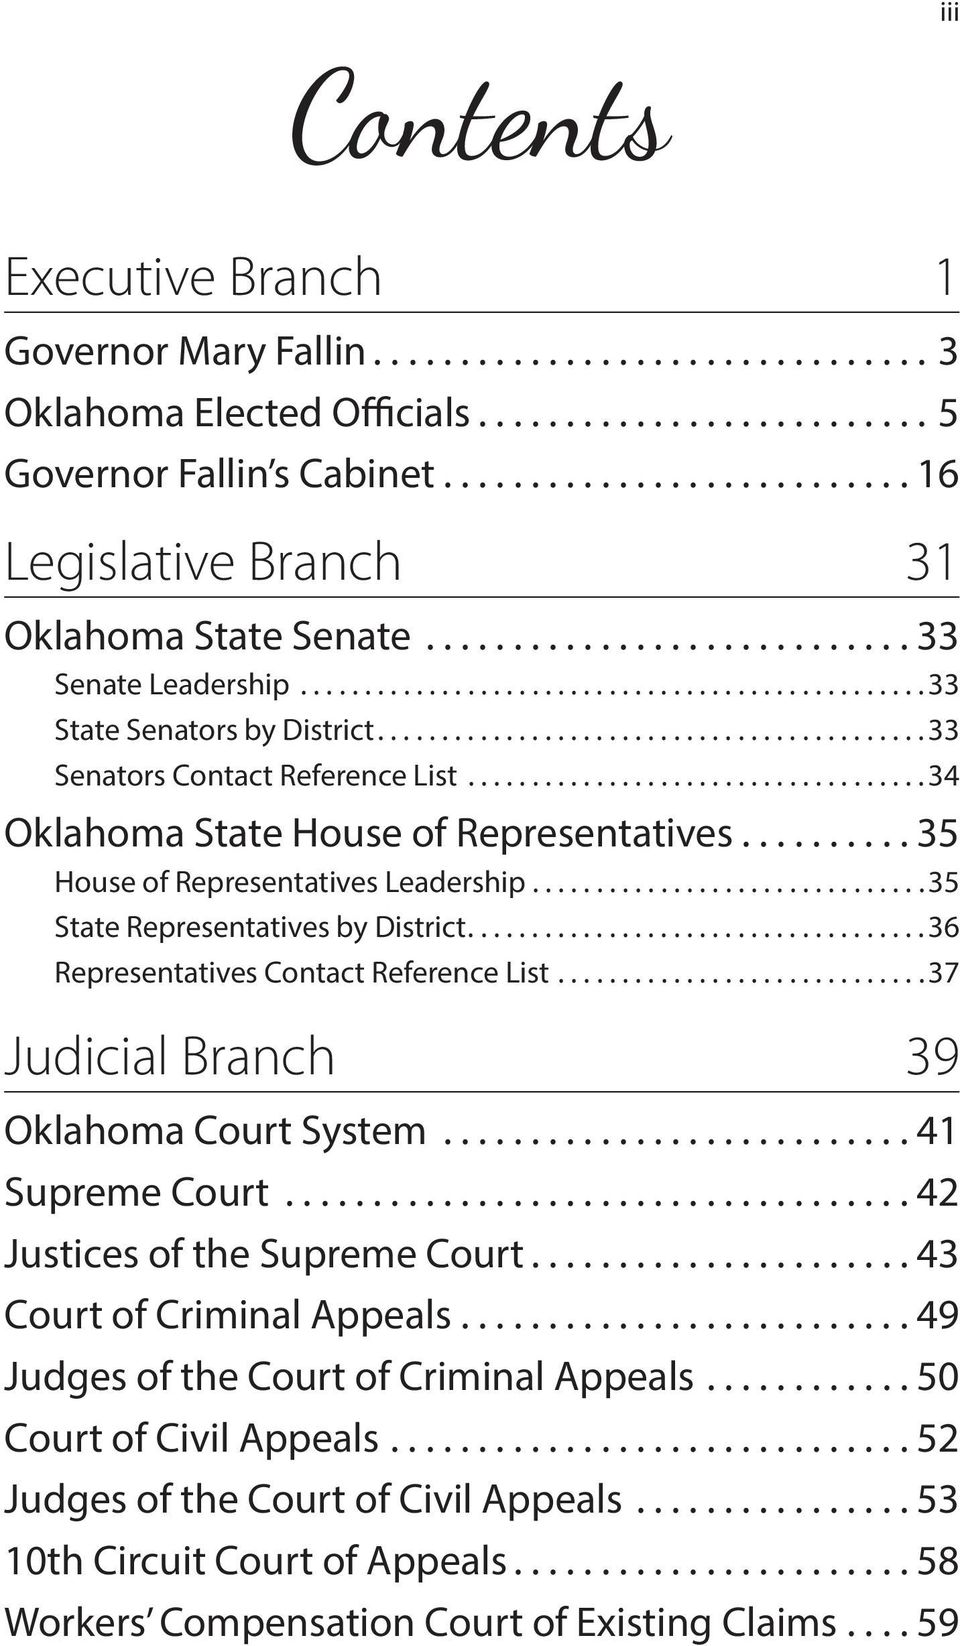 ..35 State Representatives by District...36 Representatives Contact Reference List...37 Judicial Branch 39 Oklahoma Court System...41 Supreme Court...42 Justices of the Supreme Court.